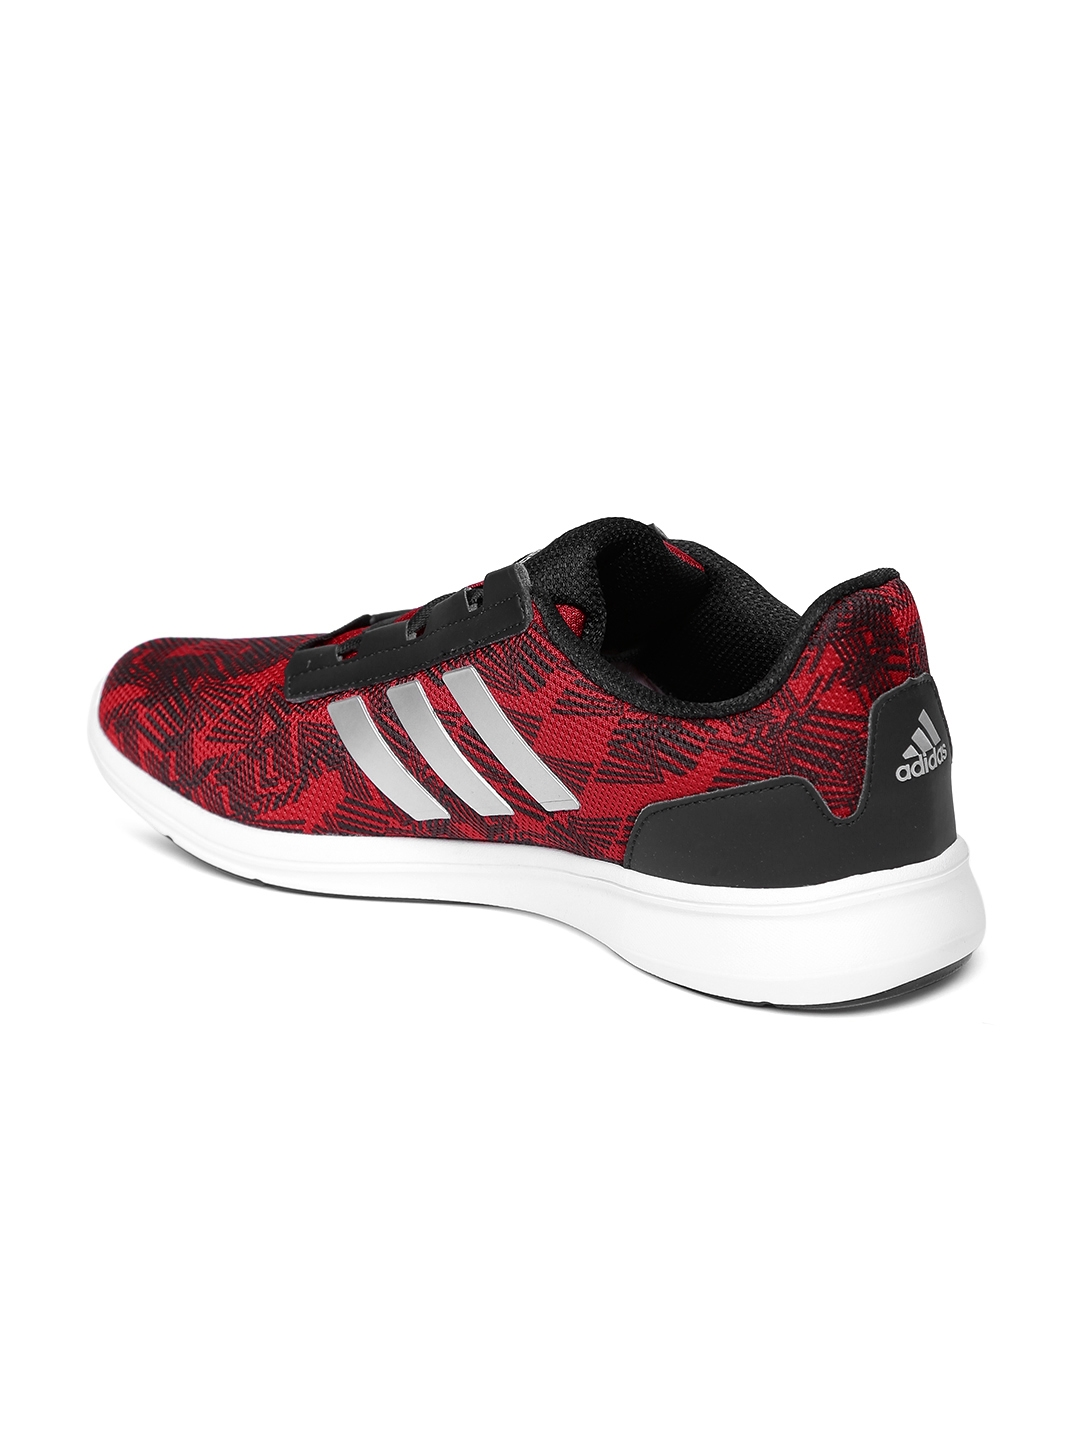 new concept 0a3fd 7defd ADIDAS Men Red  Black Adi Pacer Elite 2.0 M Running Shoes